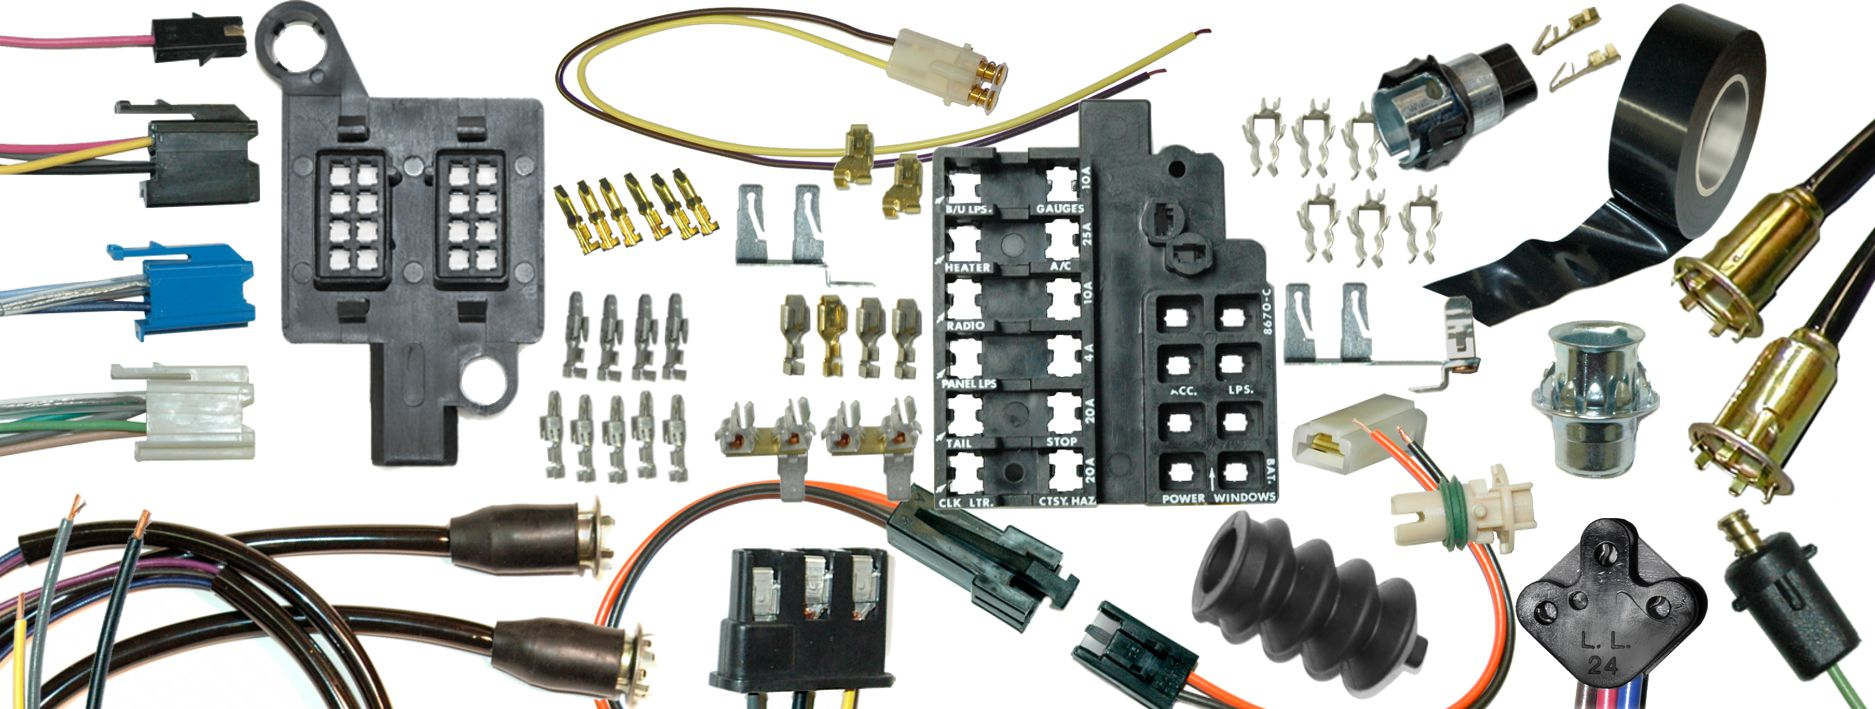 Repair Components Electrical Wiring Harness For Harnesses